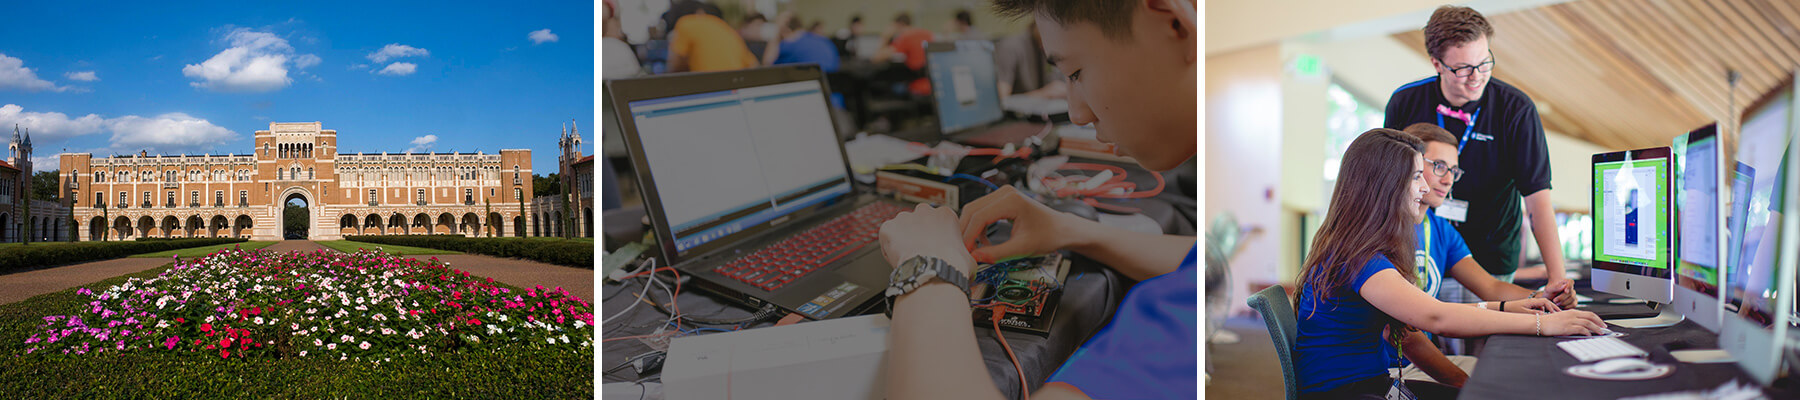 Teen Programming Academy held at Rice | iD Tech